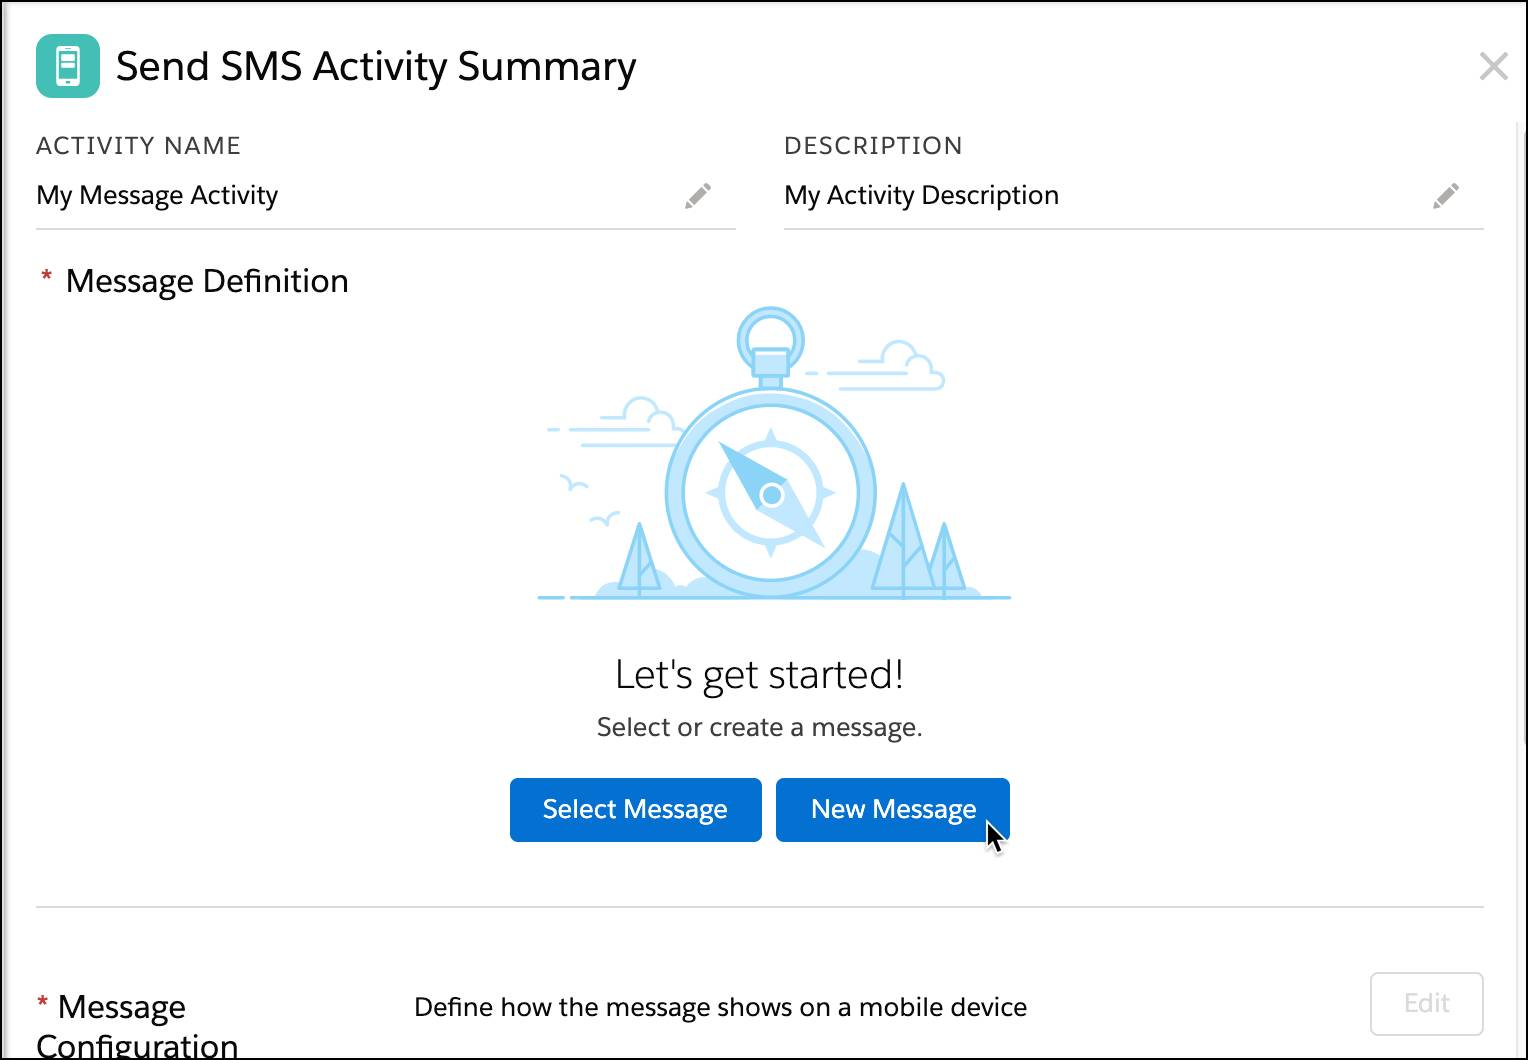 Send SMS Activity summary with new message selected.